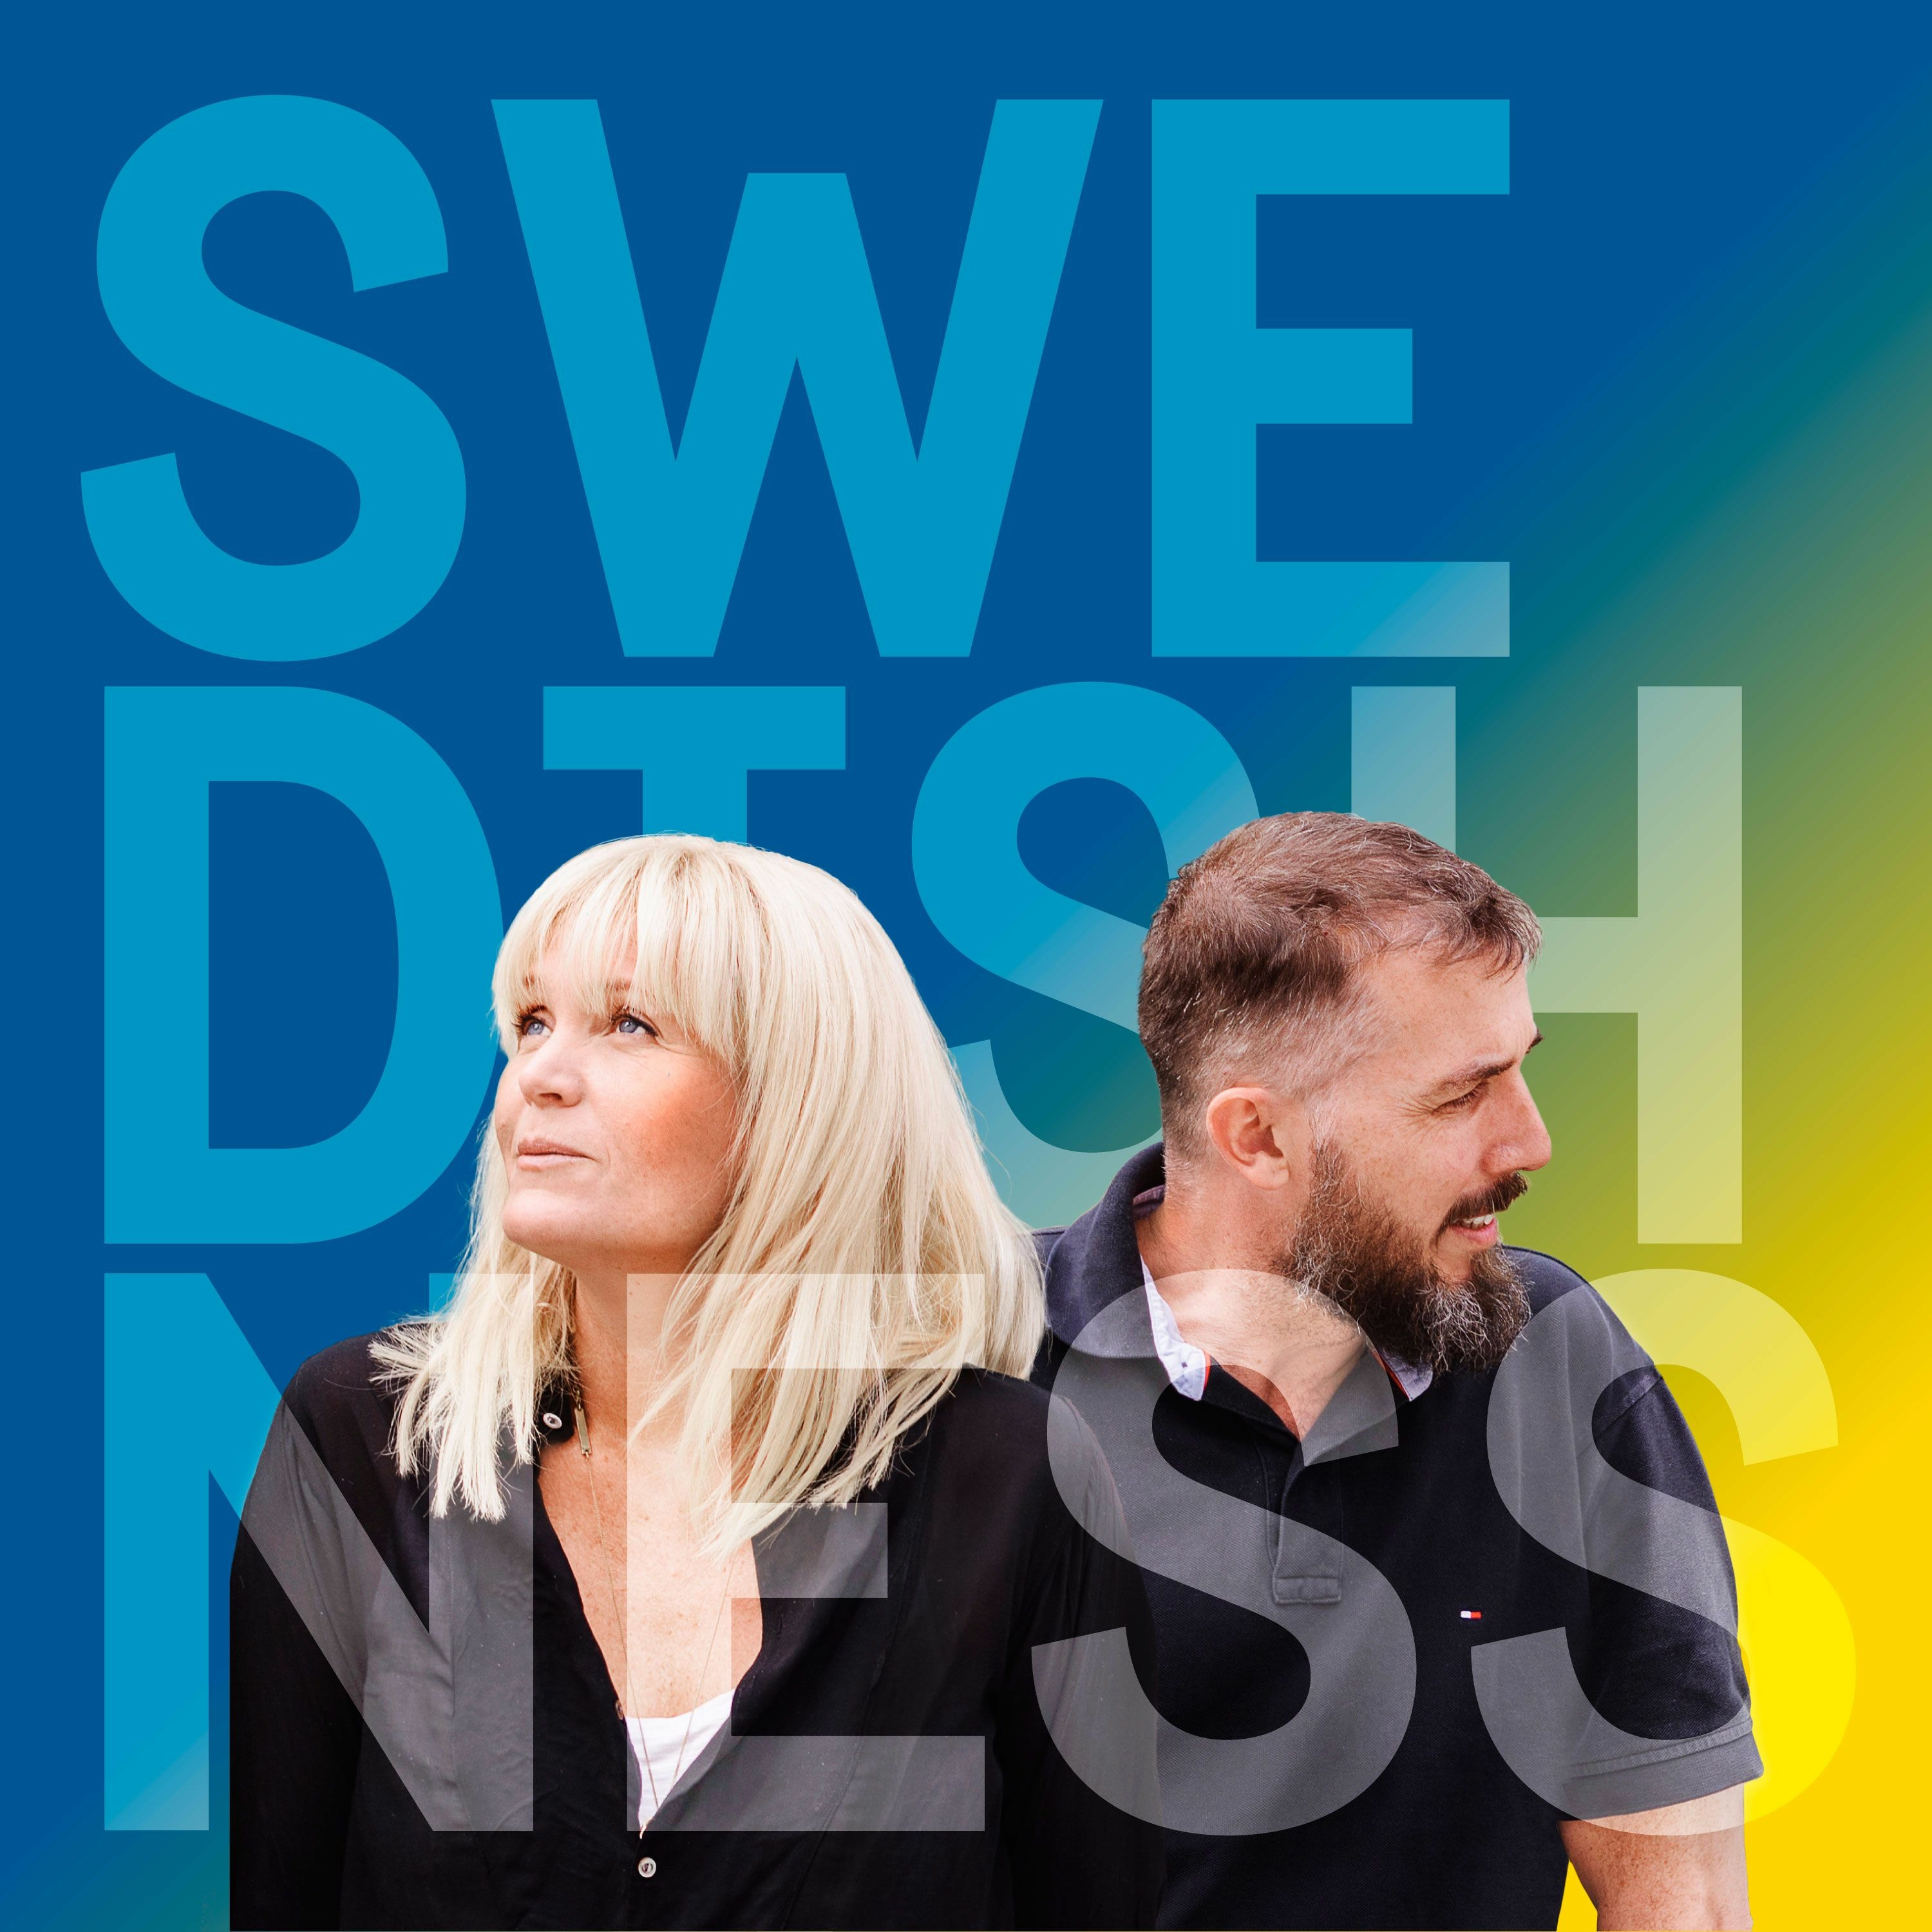 #3 Swedes – the happiest or loneliest people in the world?